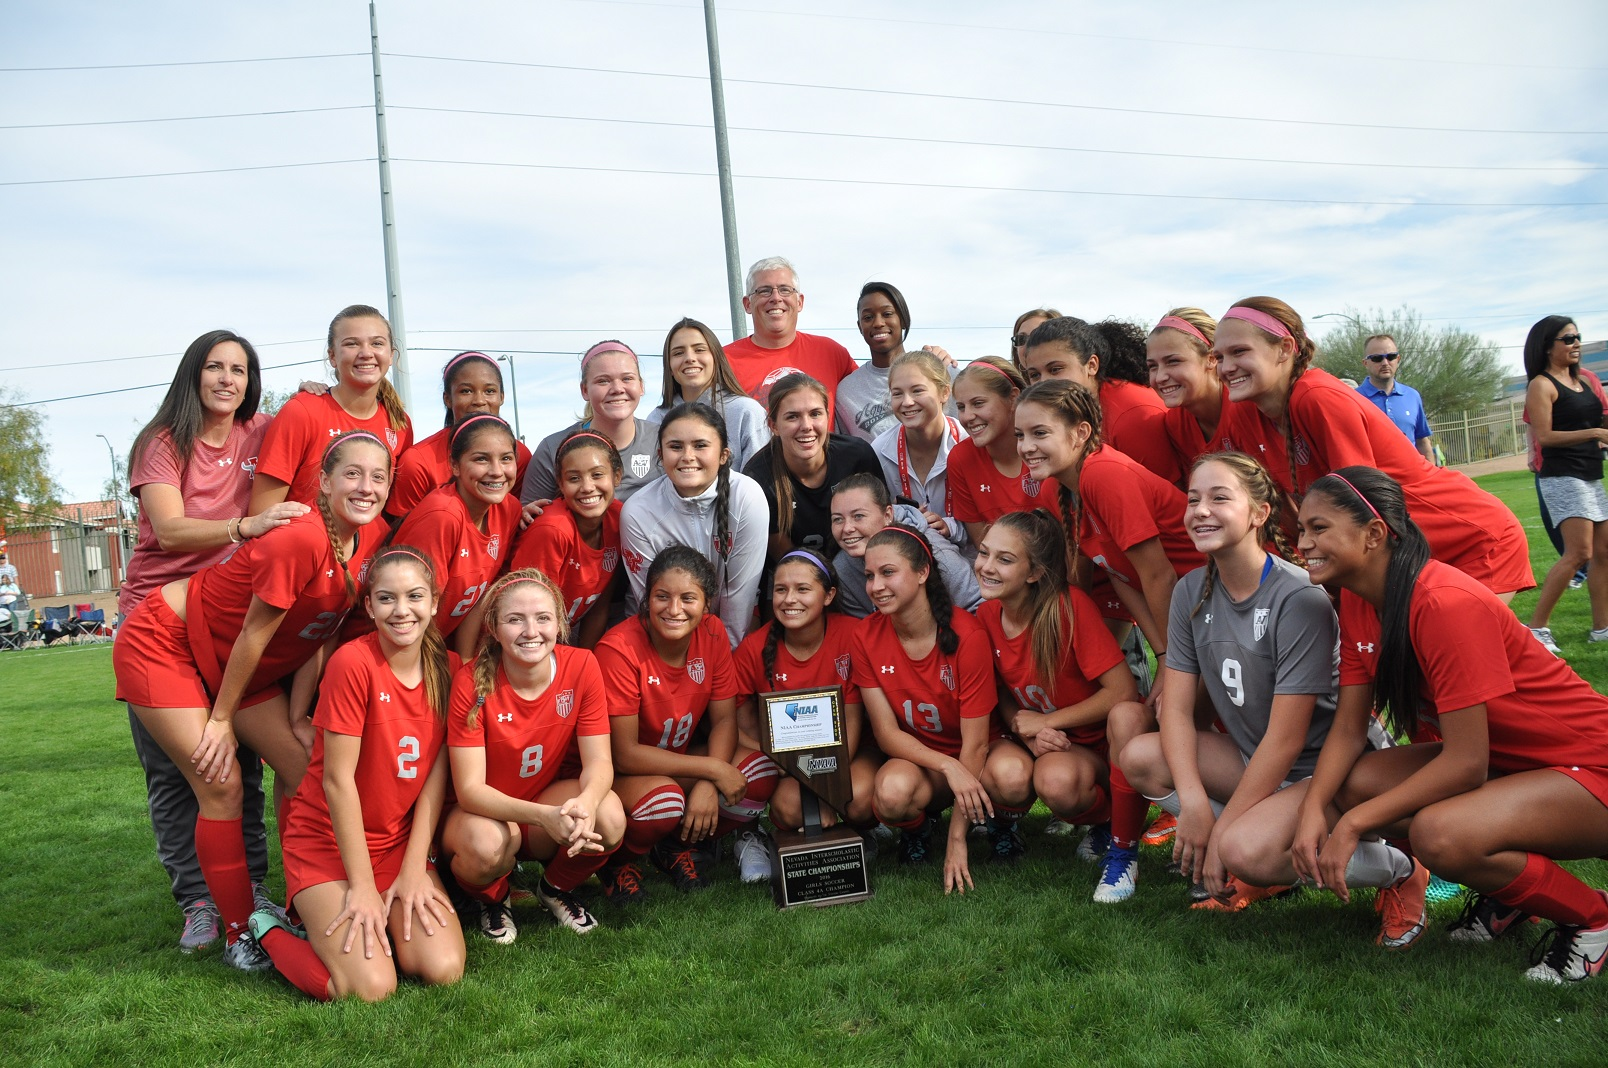 Arbor View High School is the only large-school soccer program in Nevada history - boys or girls - to win more than three consecutive state championships. The Aggies won their fifth straight state championship, with a 4-1 win. (Photo: Courtesy of Arbor View soccer)